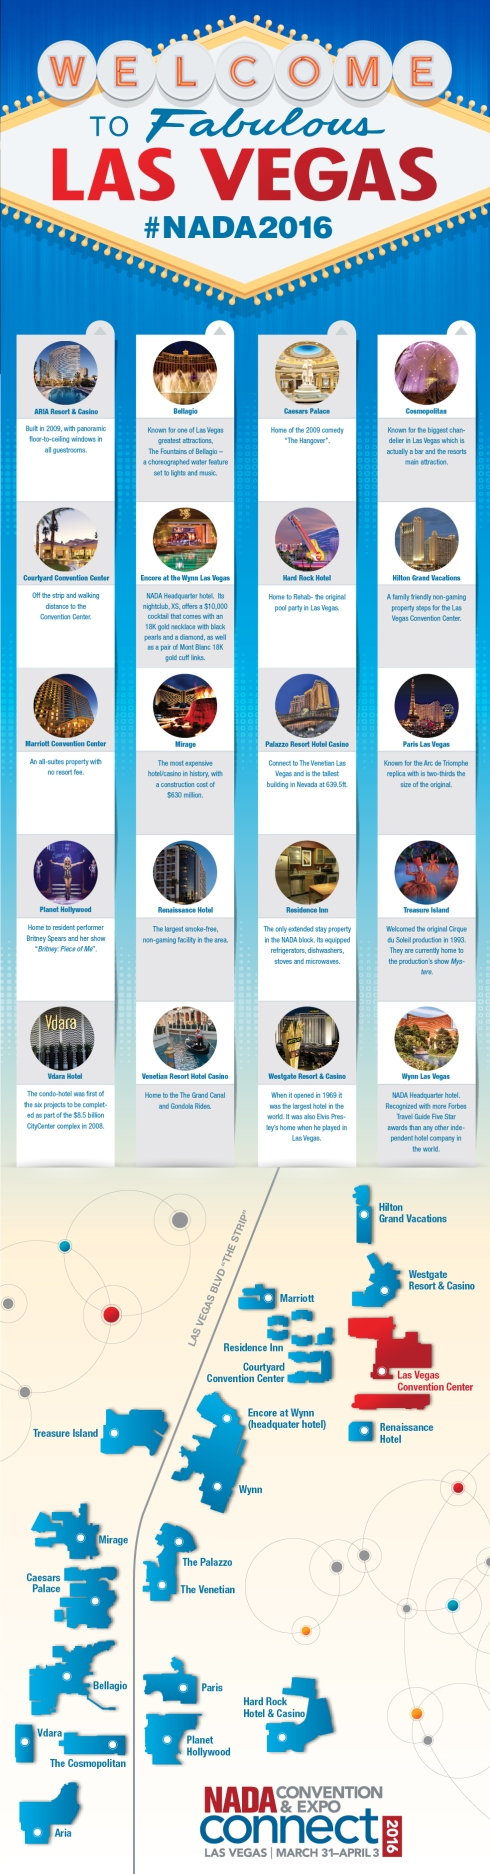 2162_Convention_Hotel_infographic_v2